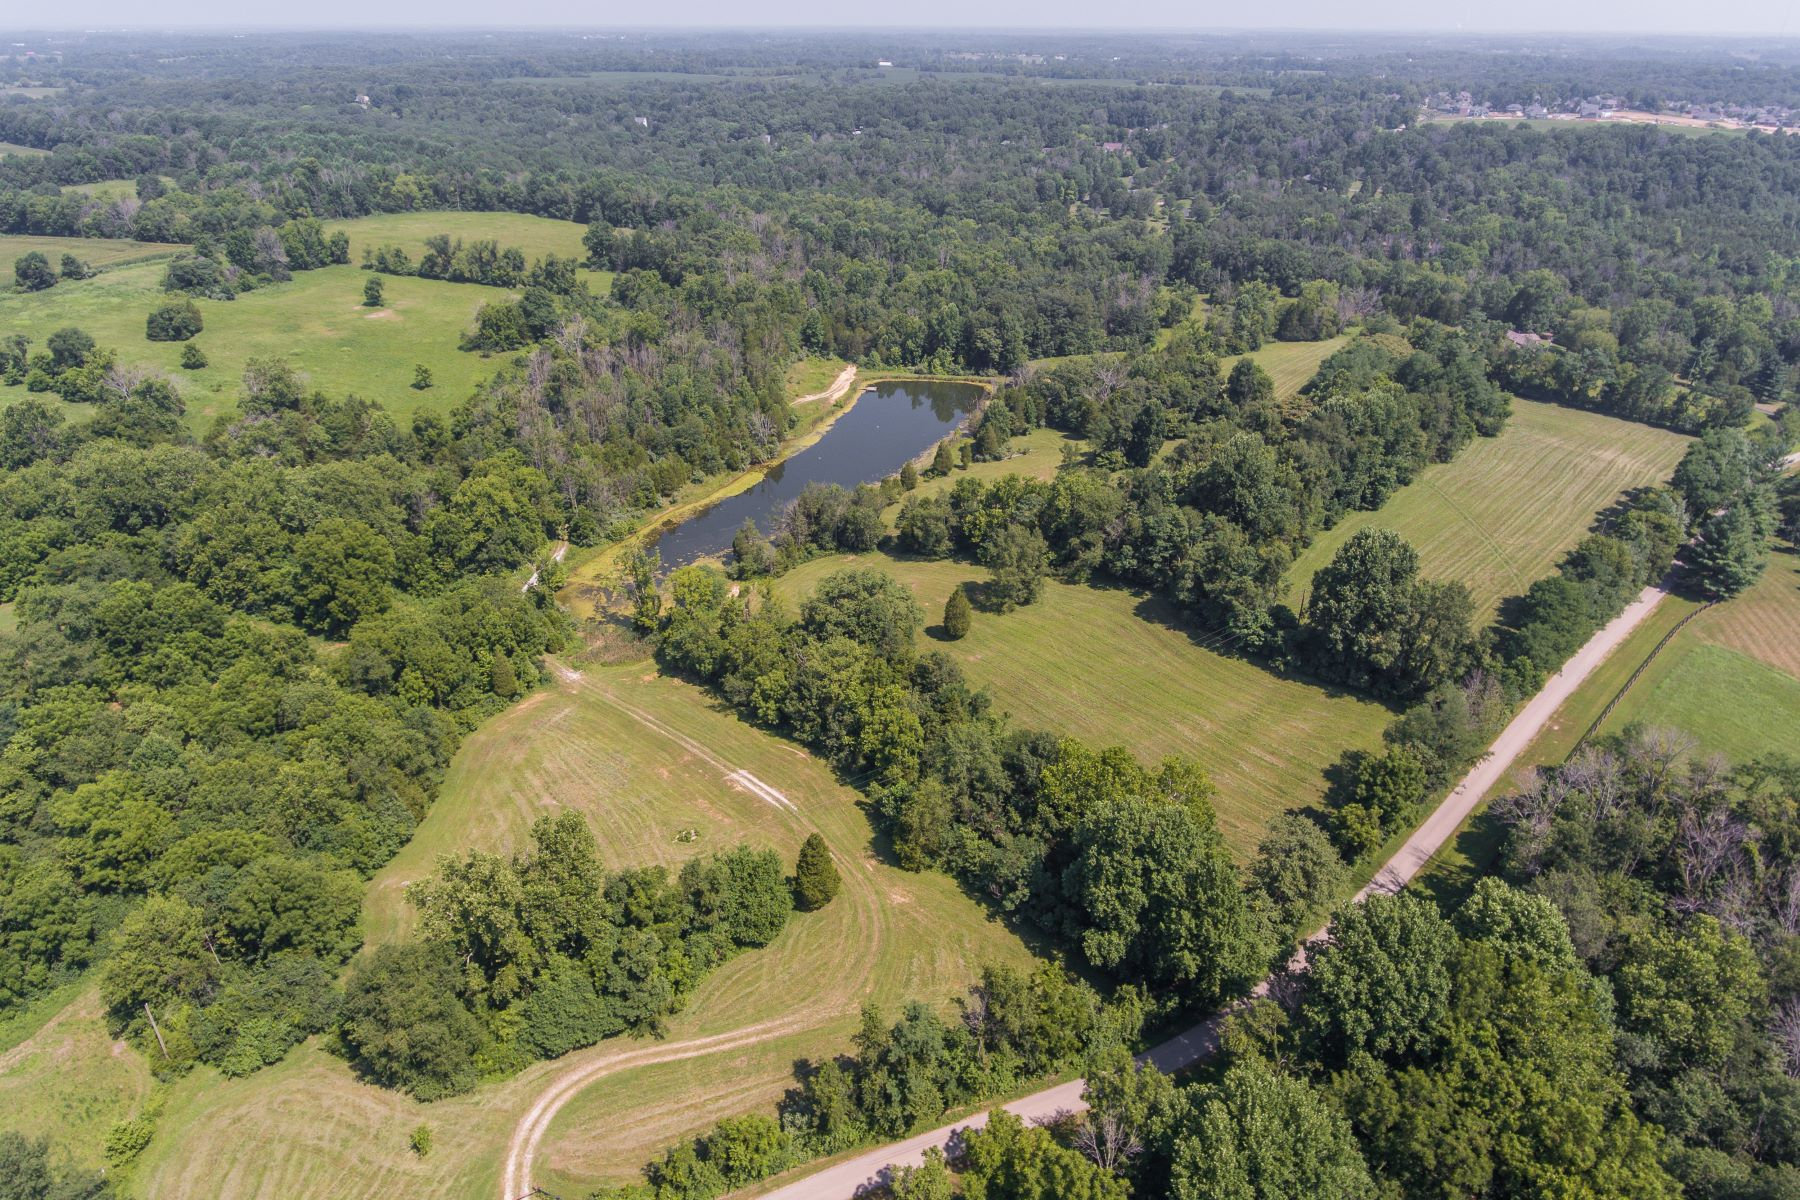 Land for Sale at 6451 Old Zaring Road B 6451 Old Zaring Road B Crestwood, Kentucky 40014 United States